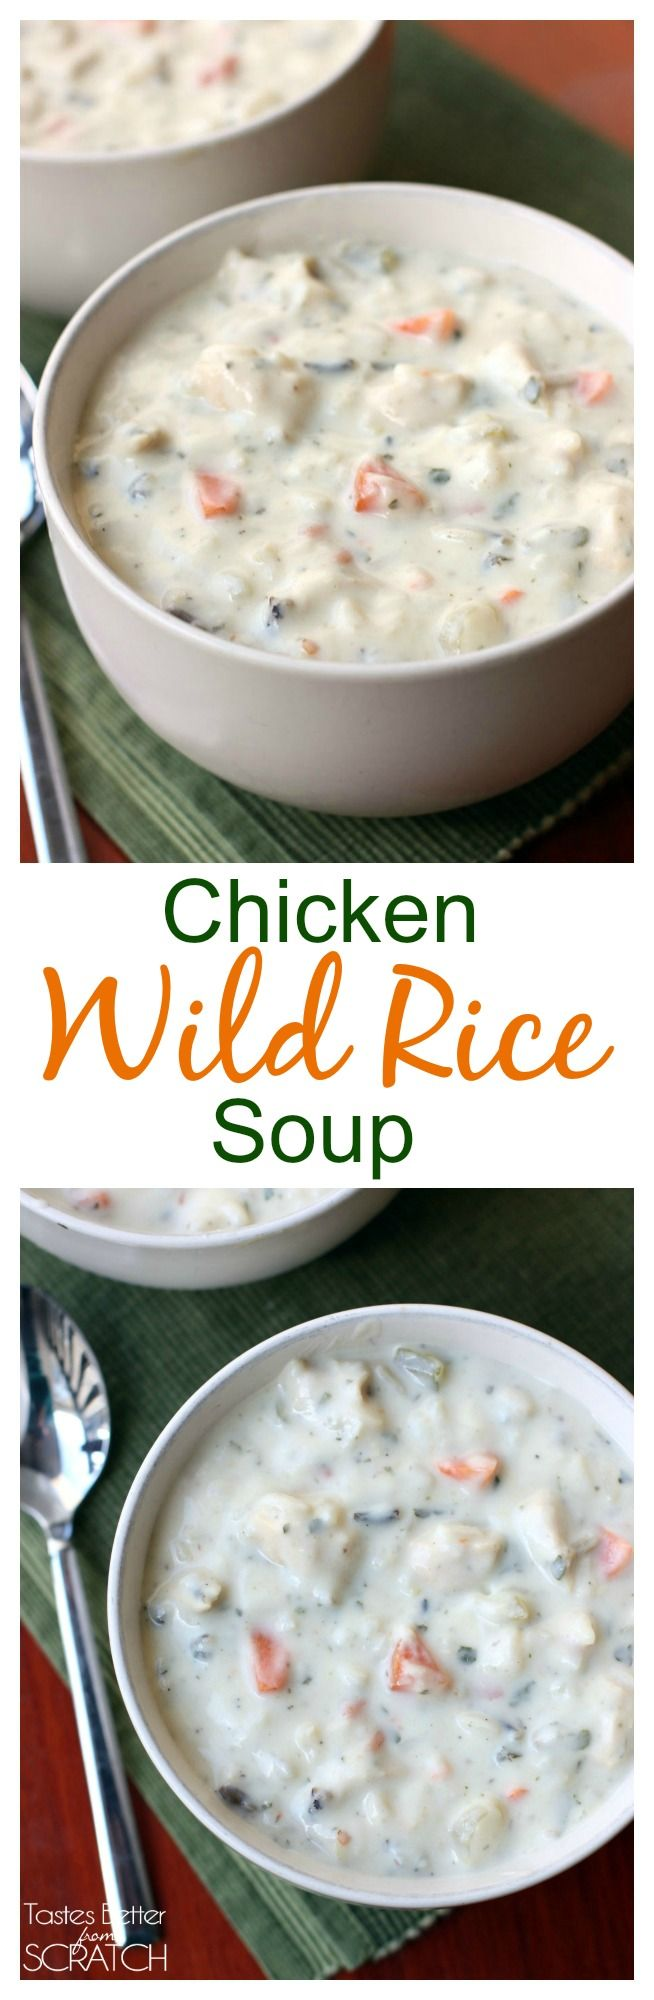 The best creamy chicken and wild rice soup recipe that the whole family will LOVE! Recipe on MyRecipeMagic.com